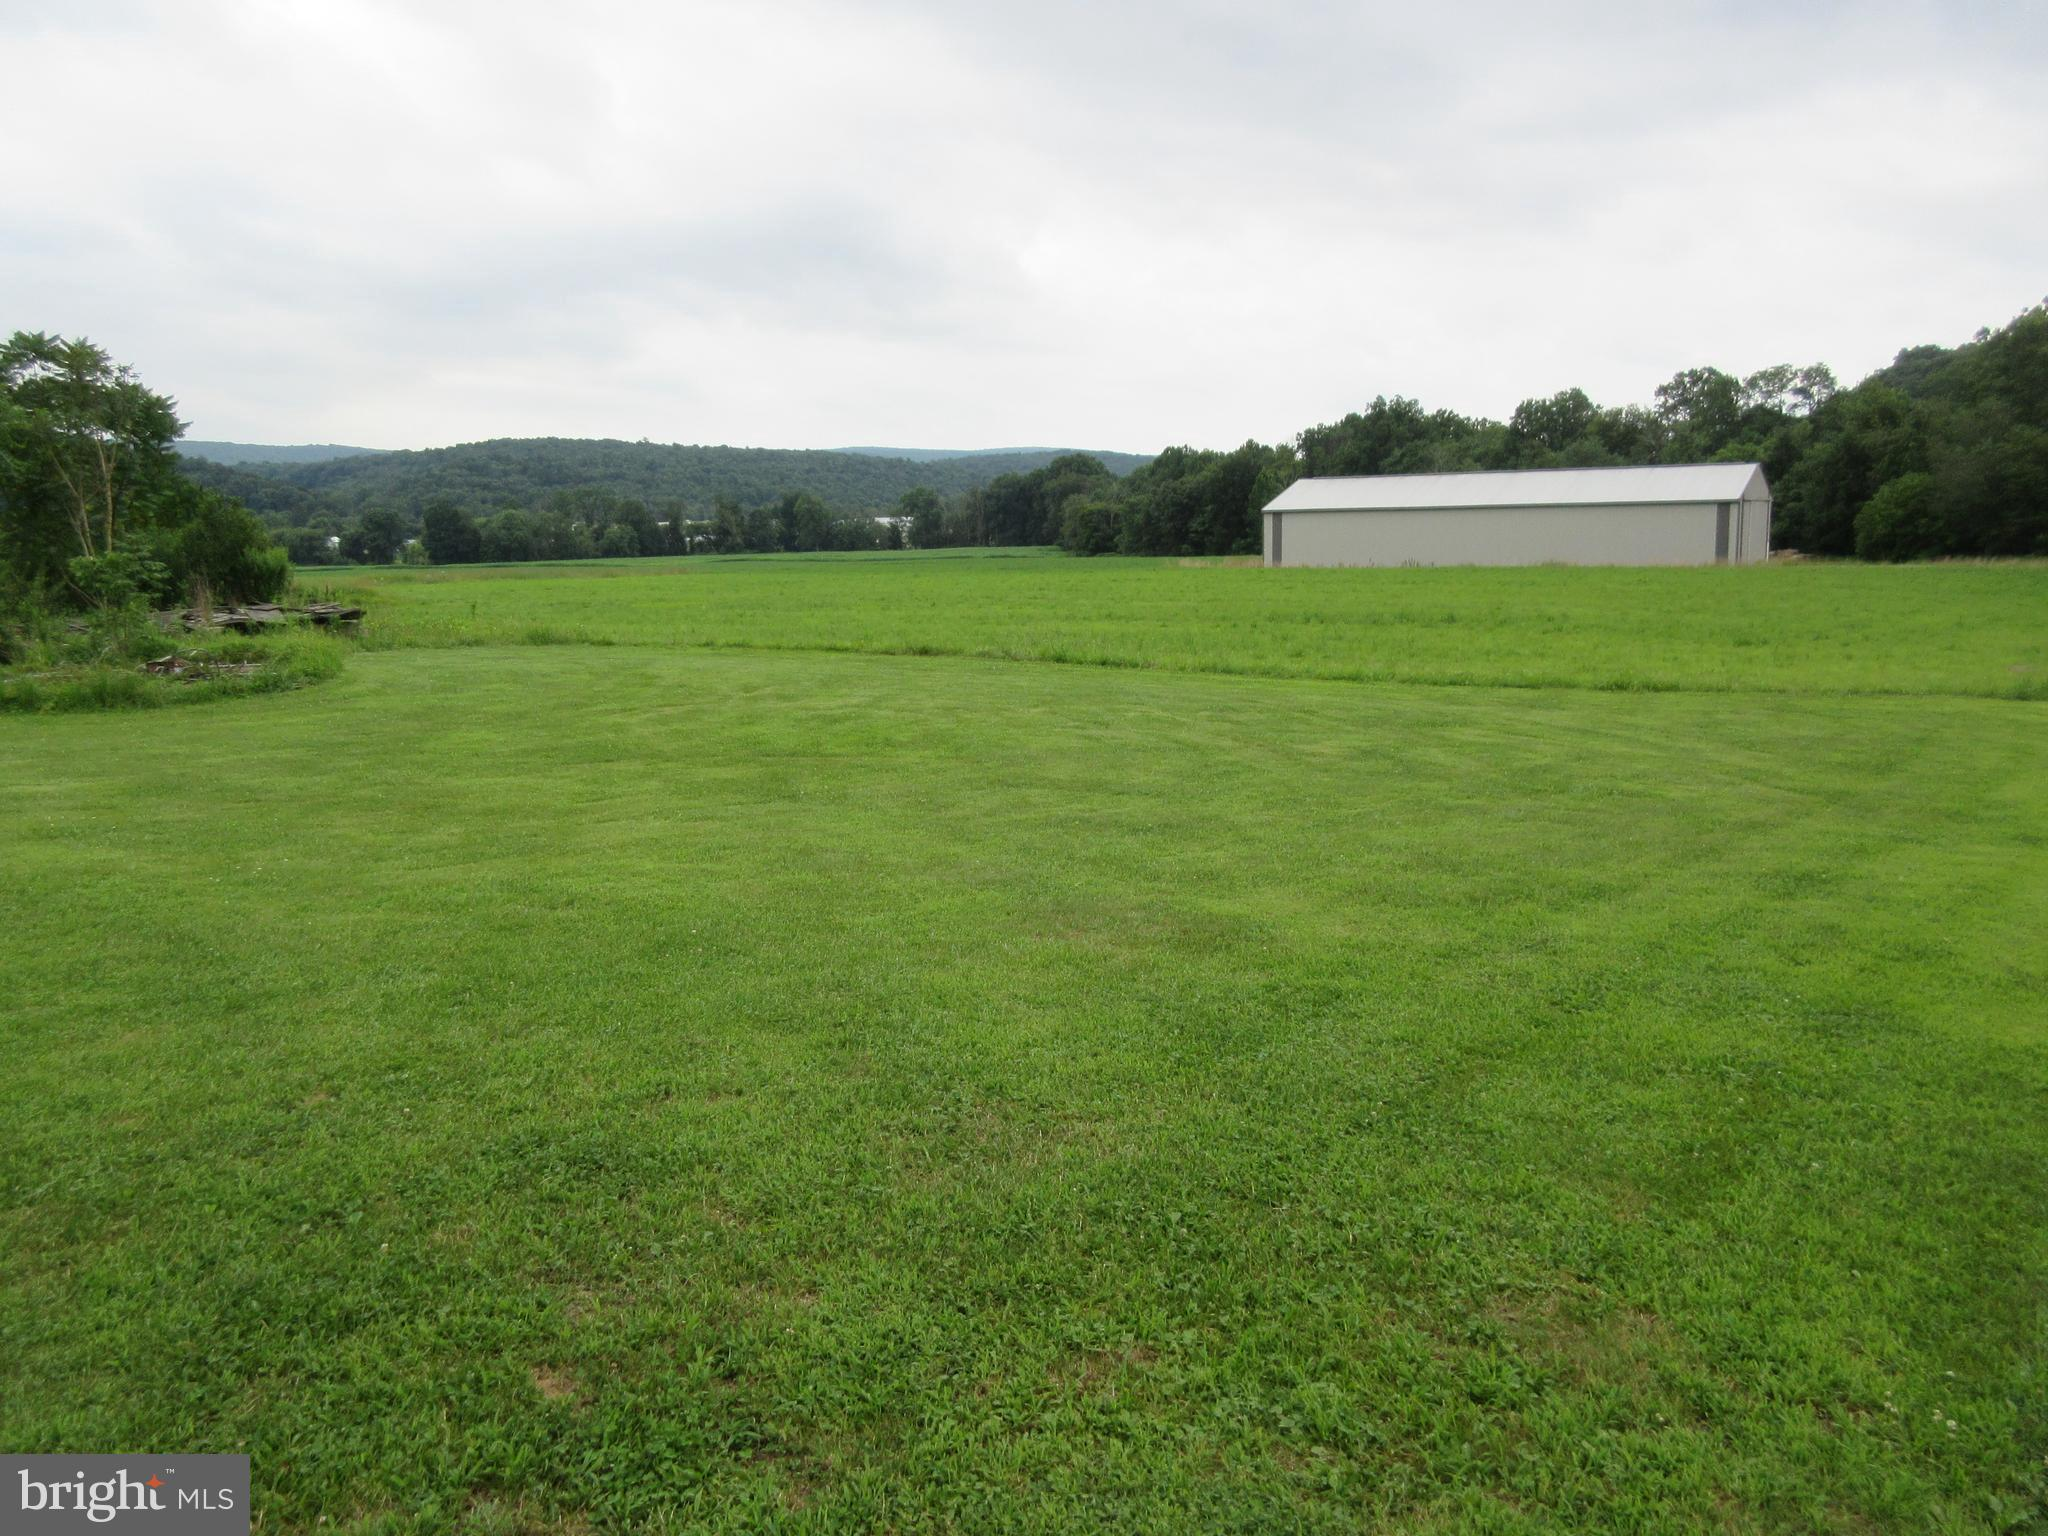 0 ROCK ROAD, PINE GROVE, PA 17963